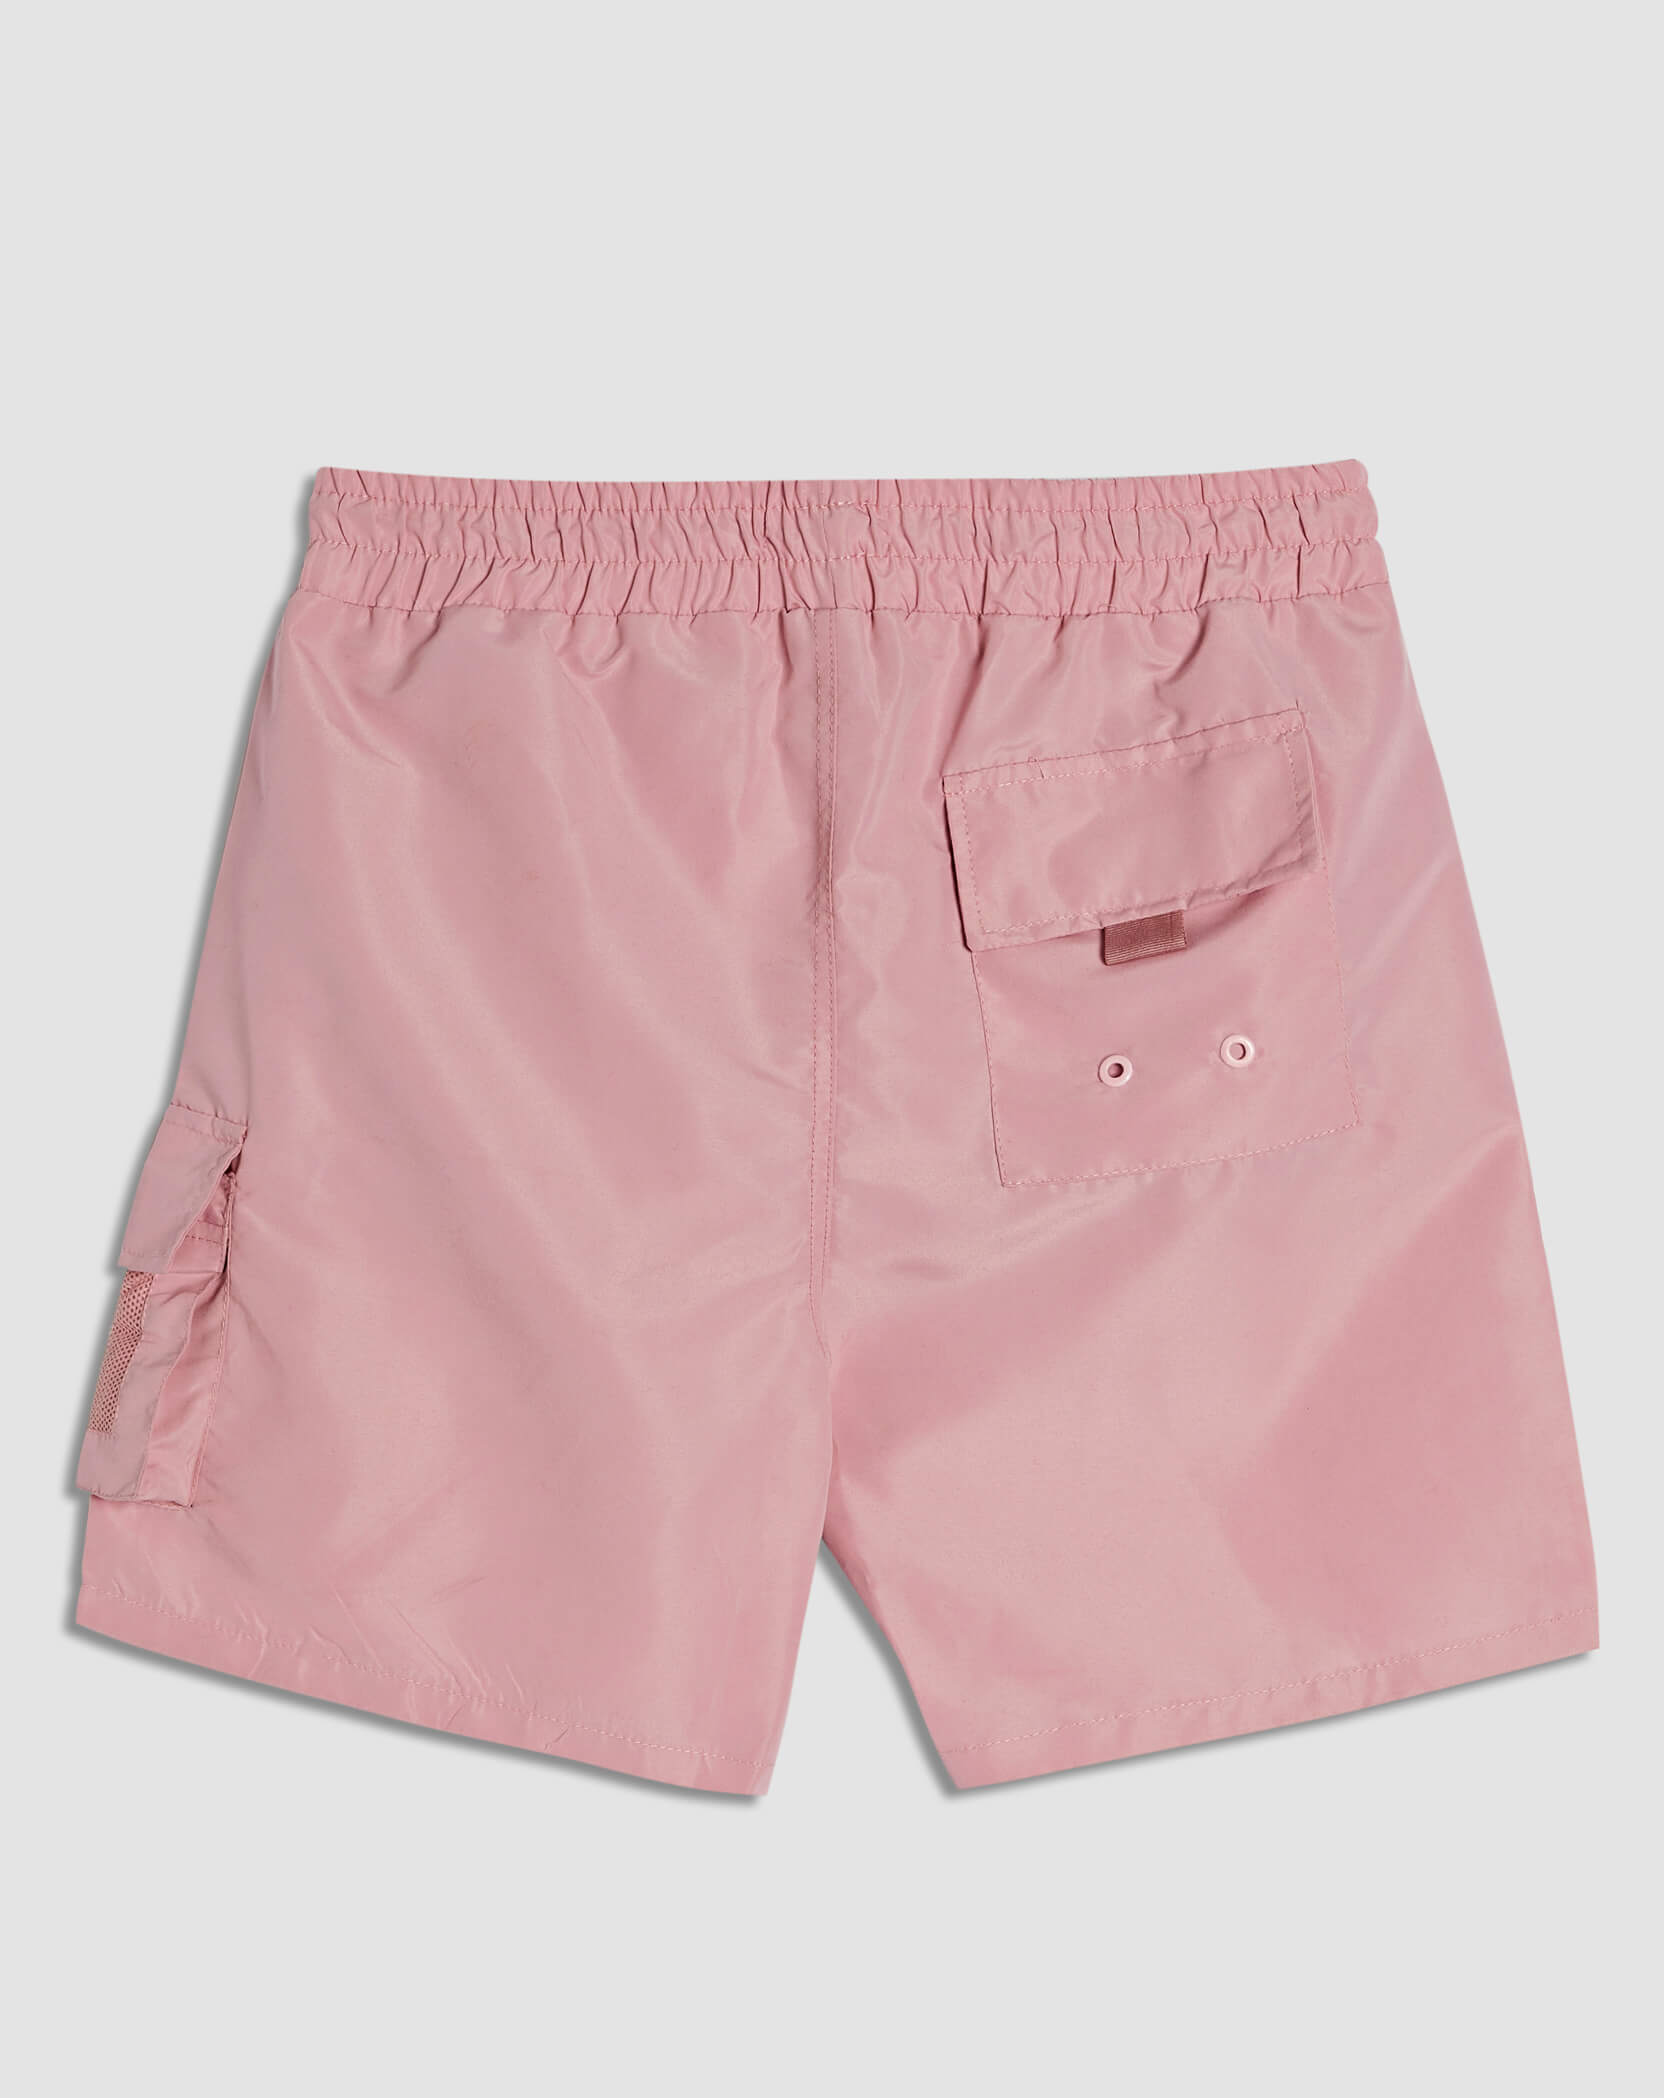 BELLFIELD MOZAMBIQUE MENS SWIM SHORTS | LILAC